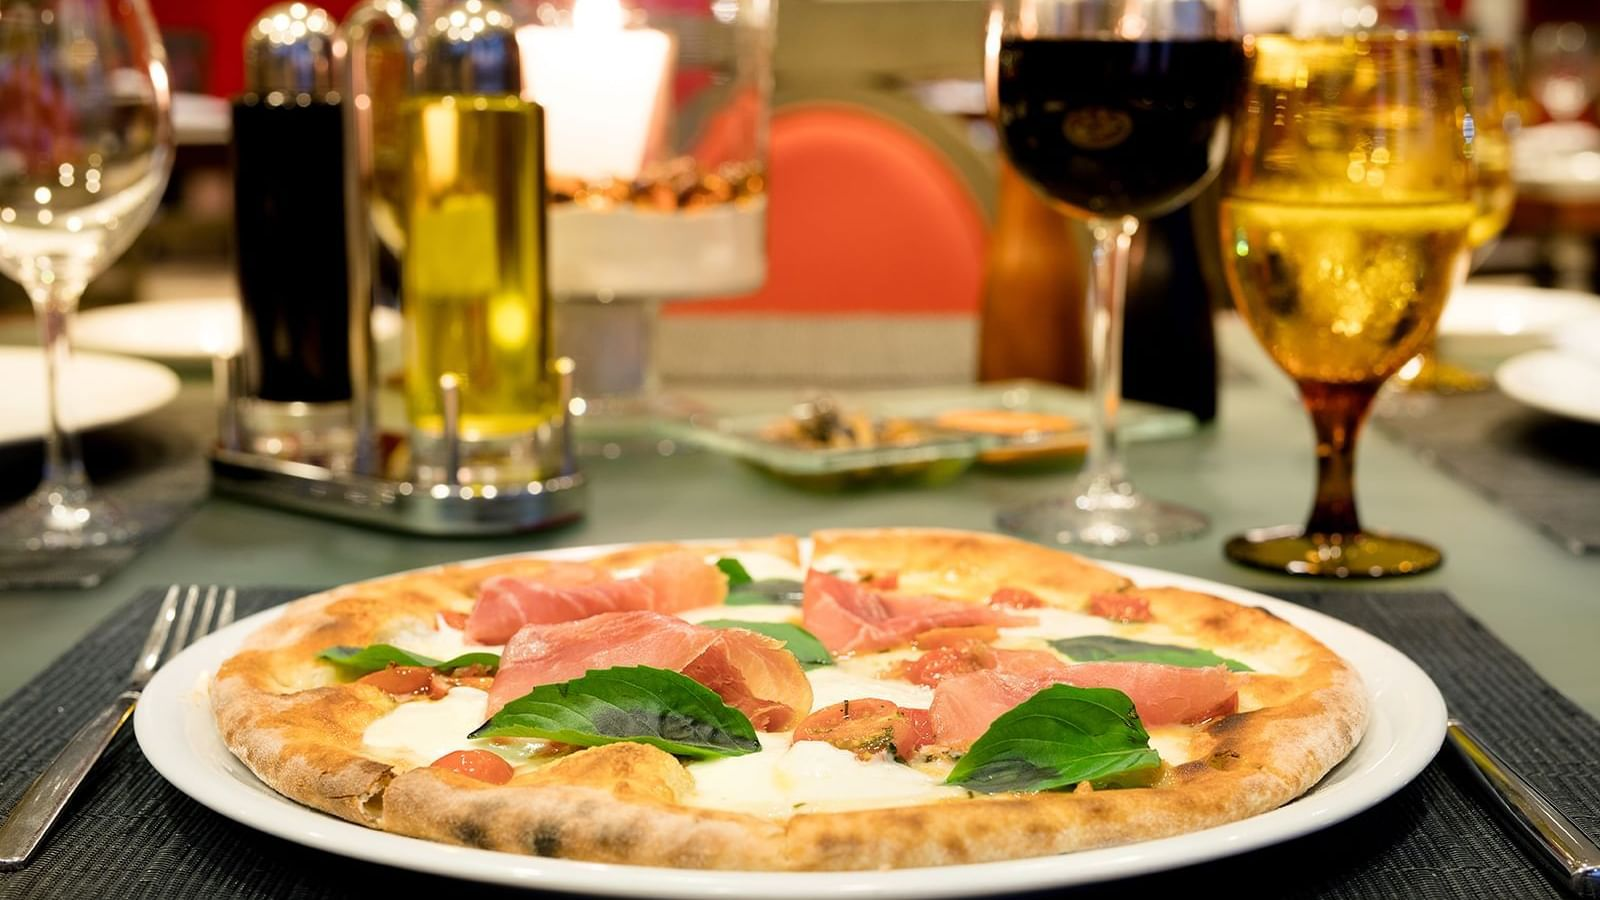 Pizza and wine served at Tavola Restaurant in Princess Mundo Imperial